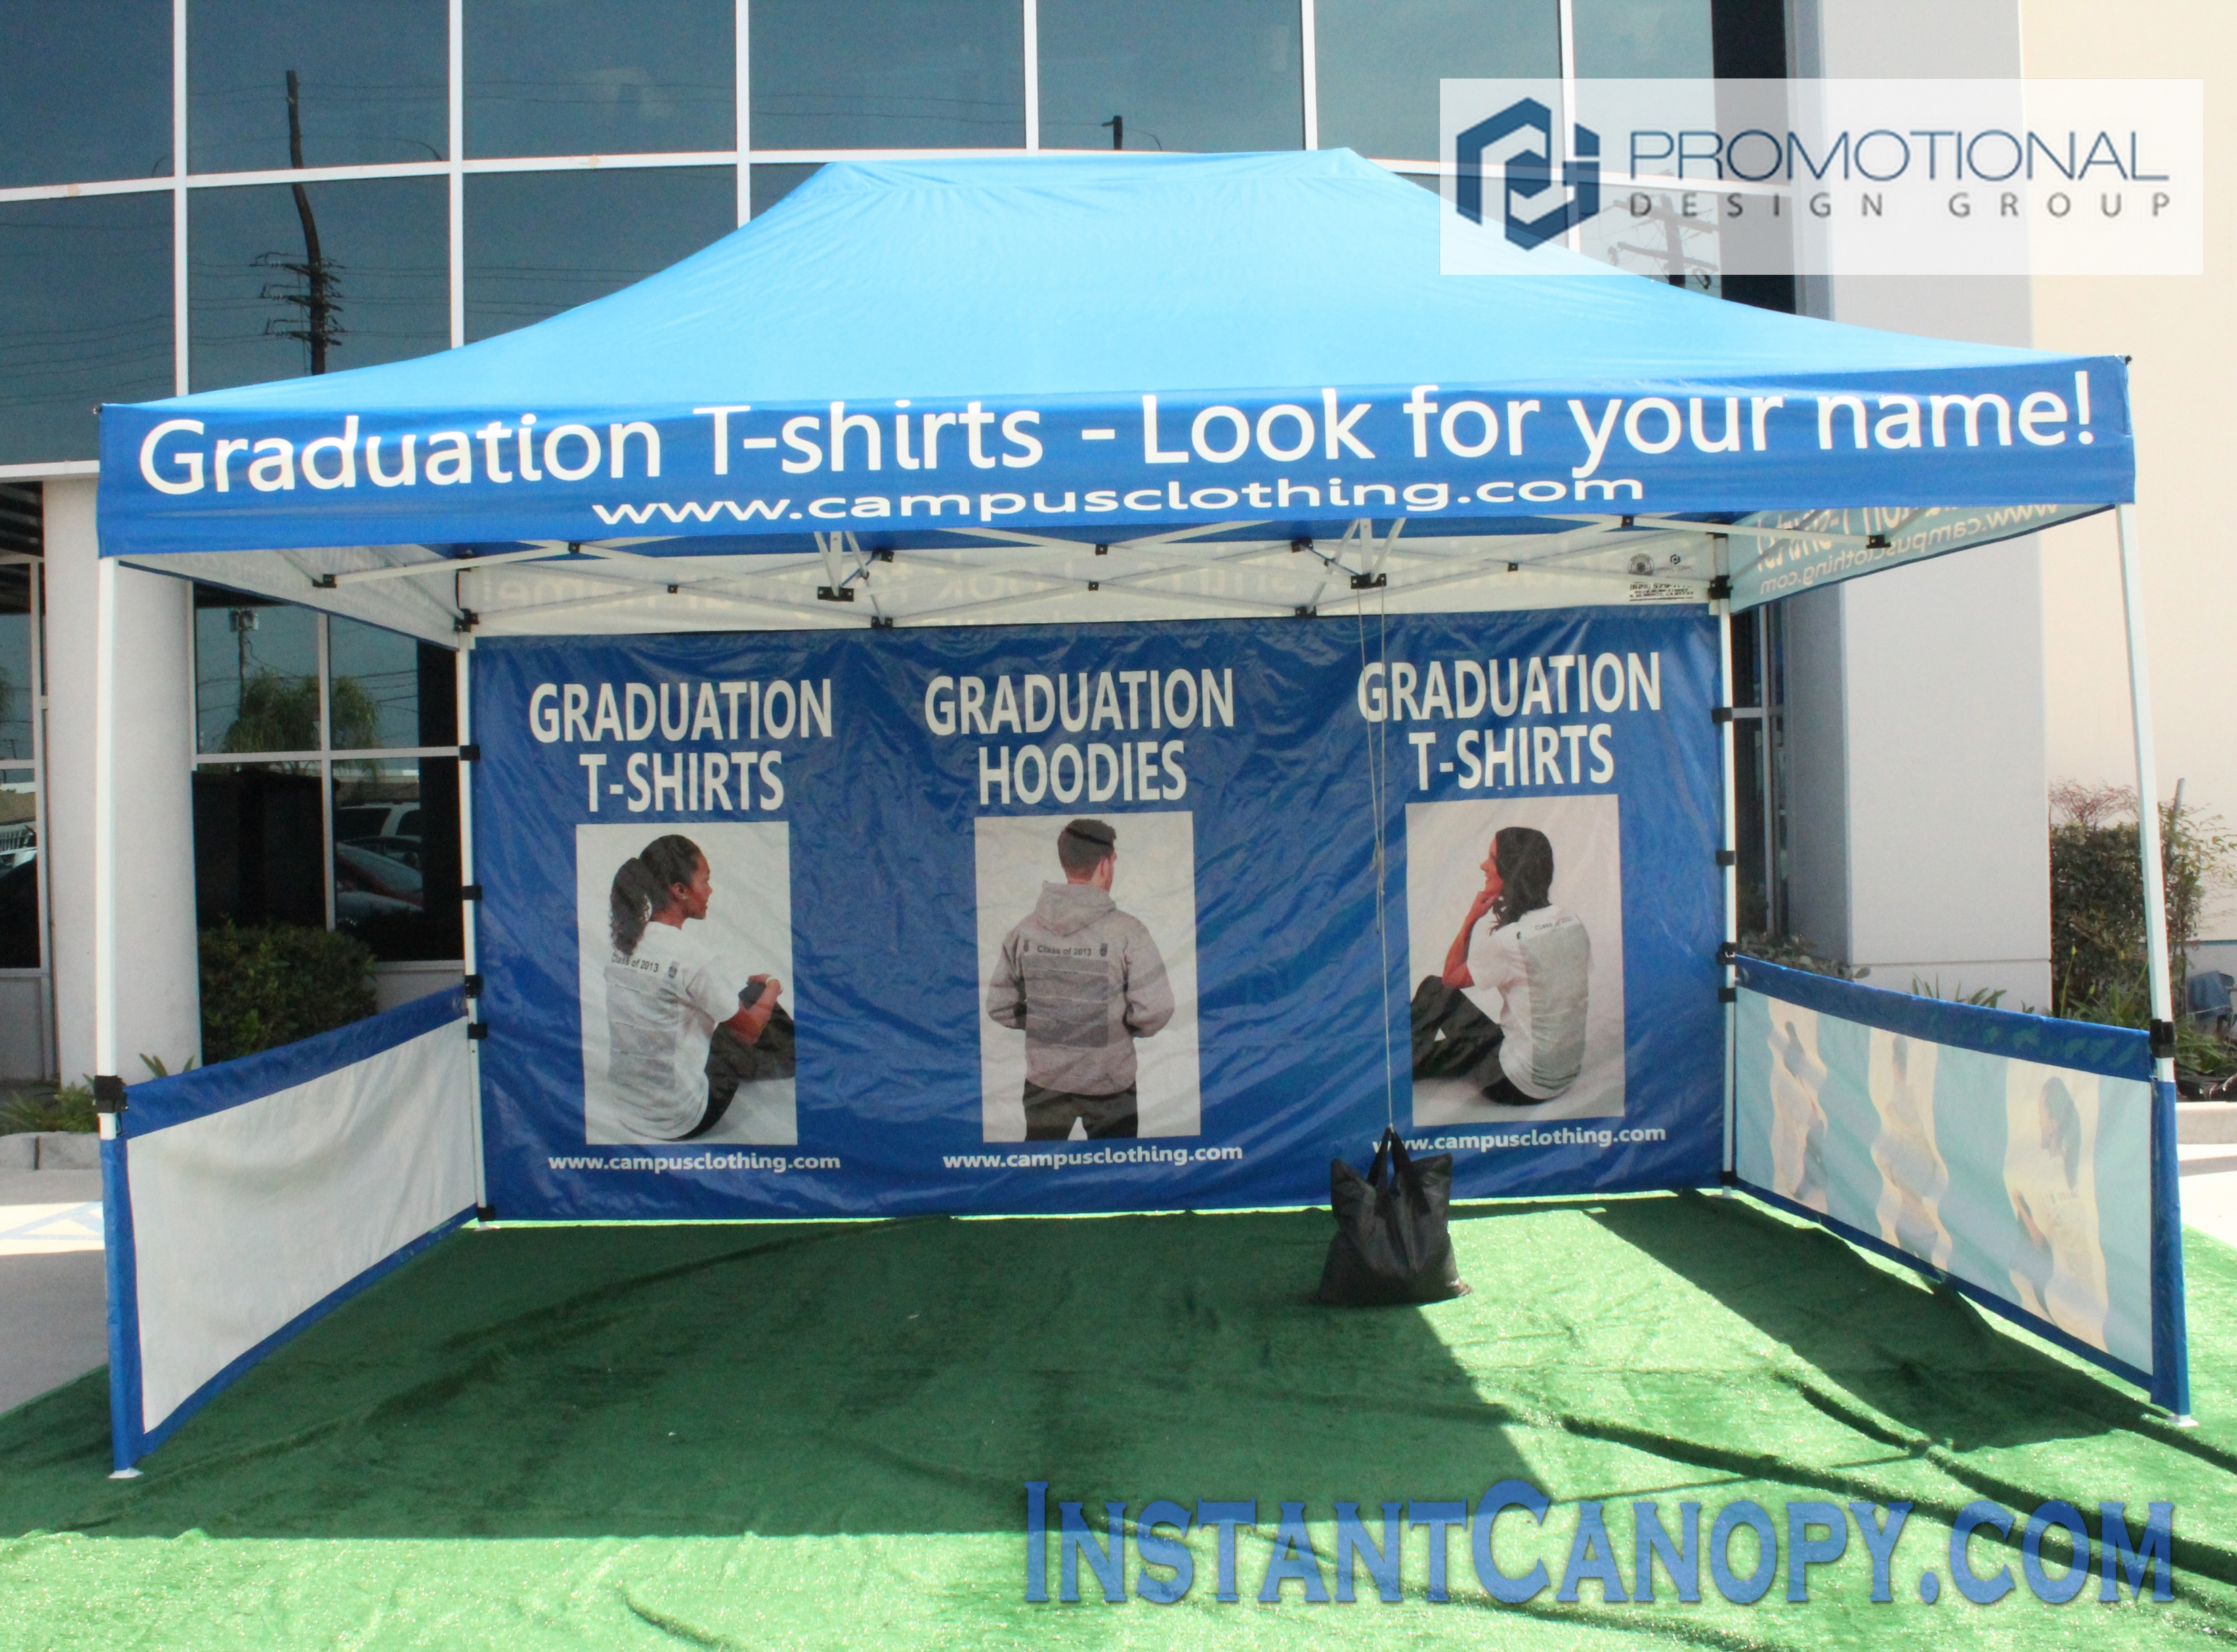 10 X 15 Instant Canopy For Campus Clothing